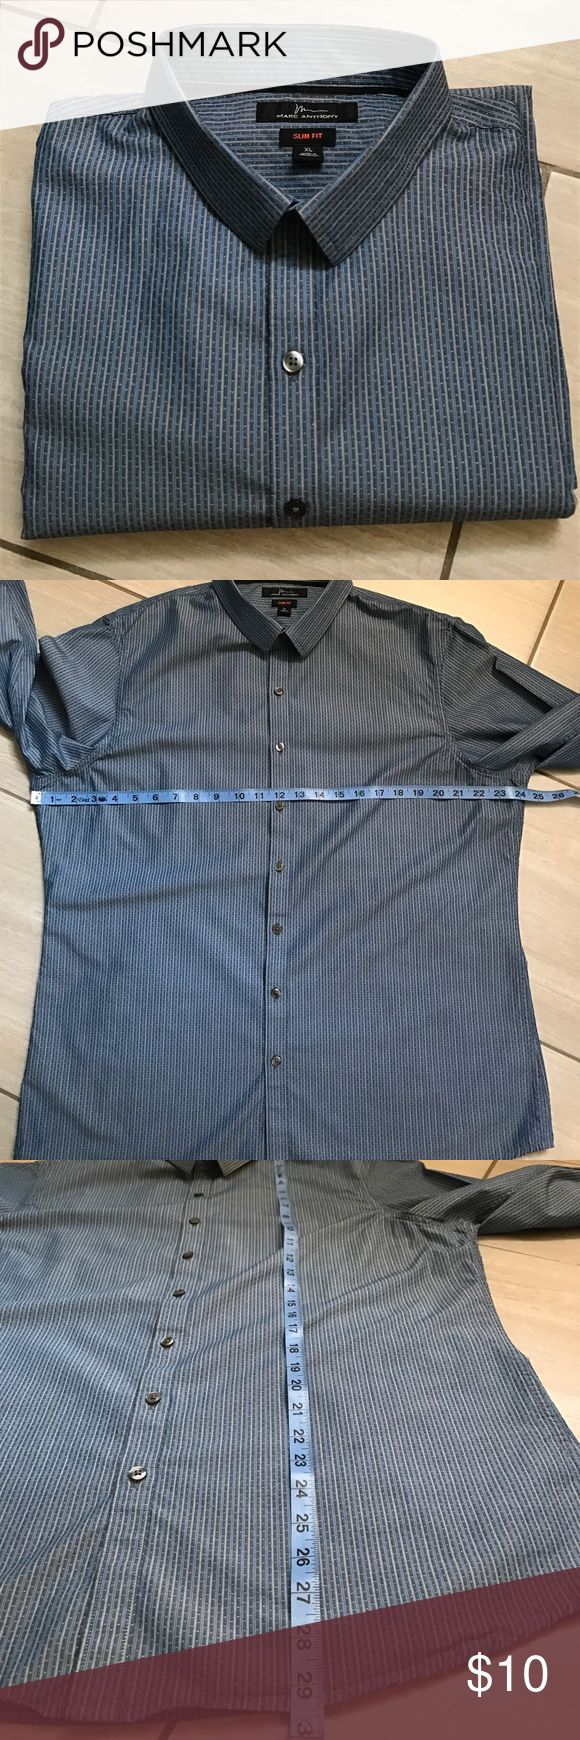 """Marc Anthony men's slim fit dress shirt EUC men's slim fit dress shirt 💯 cotton. Long sleeve with a 31"""" arm length size XL. This has a very handsome pine stripe pattern. From a smoke free home. marc Anthony  Shirts Dress Shirts"""